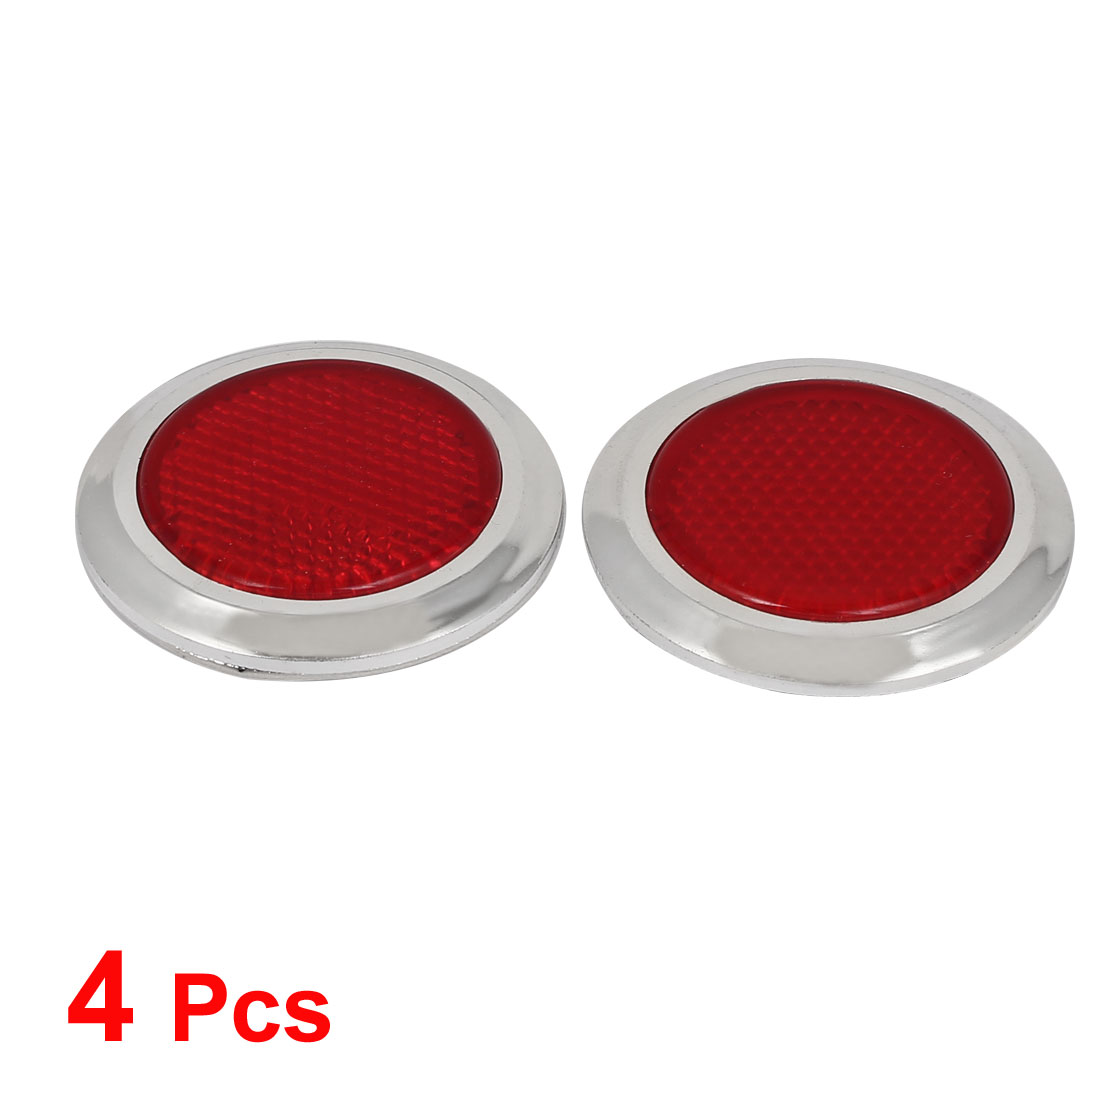 4x Red Car Motorcycles Reflective Sticker Reflector Round Chrome Self Adhesive